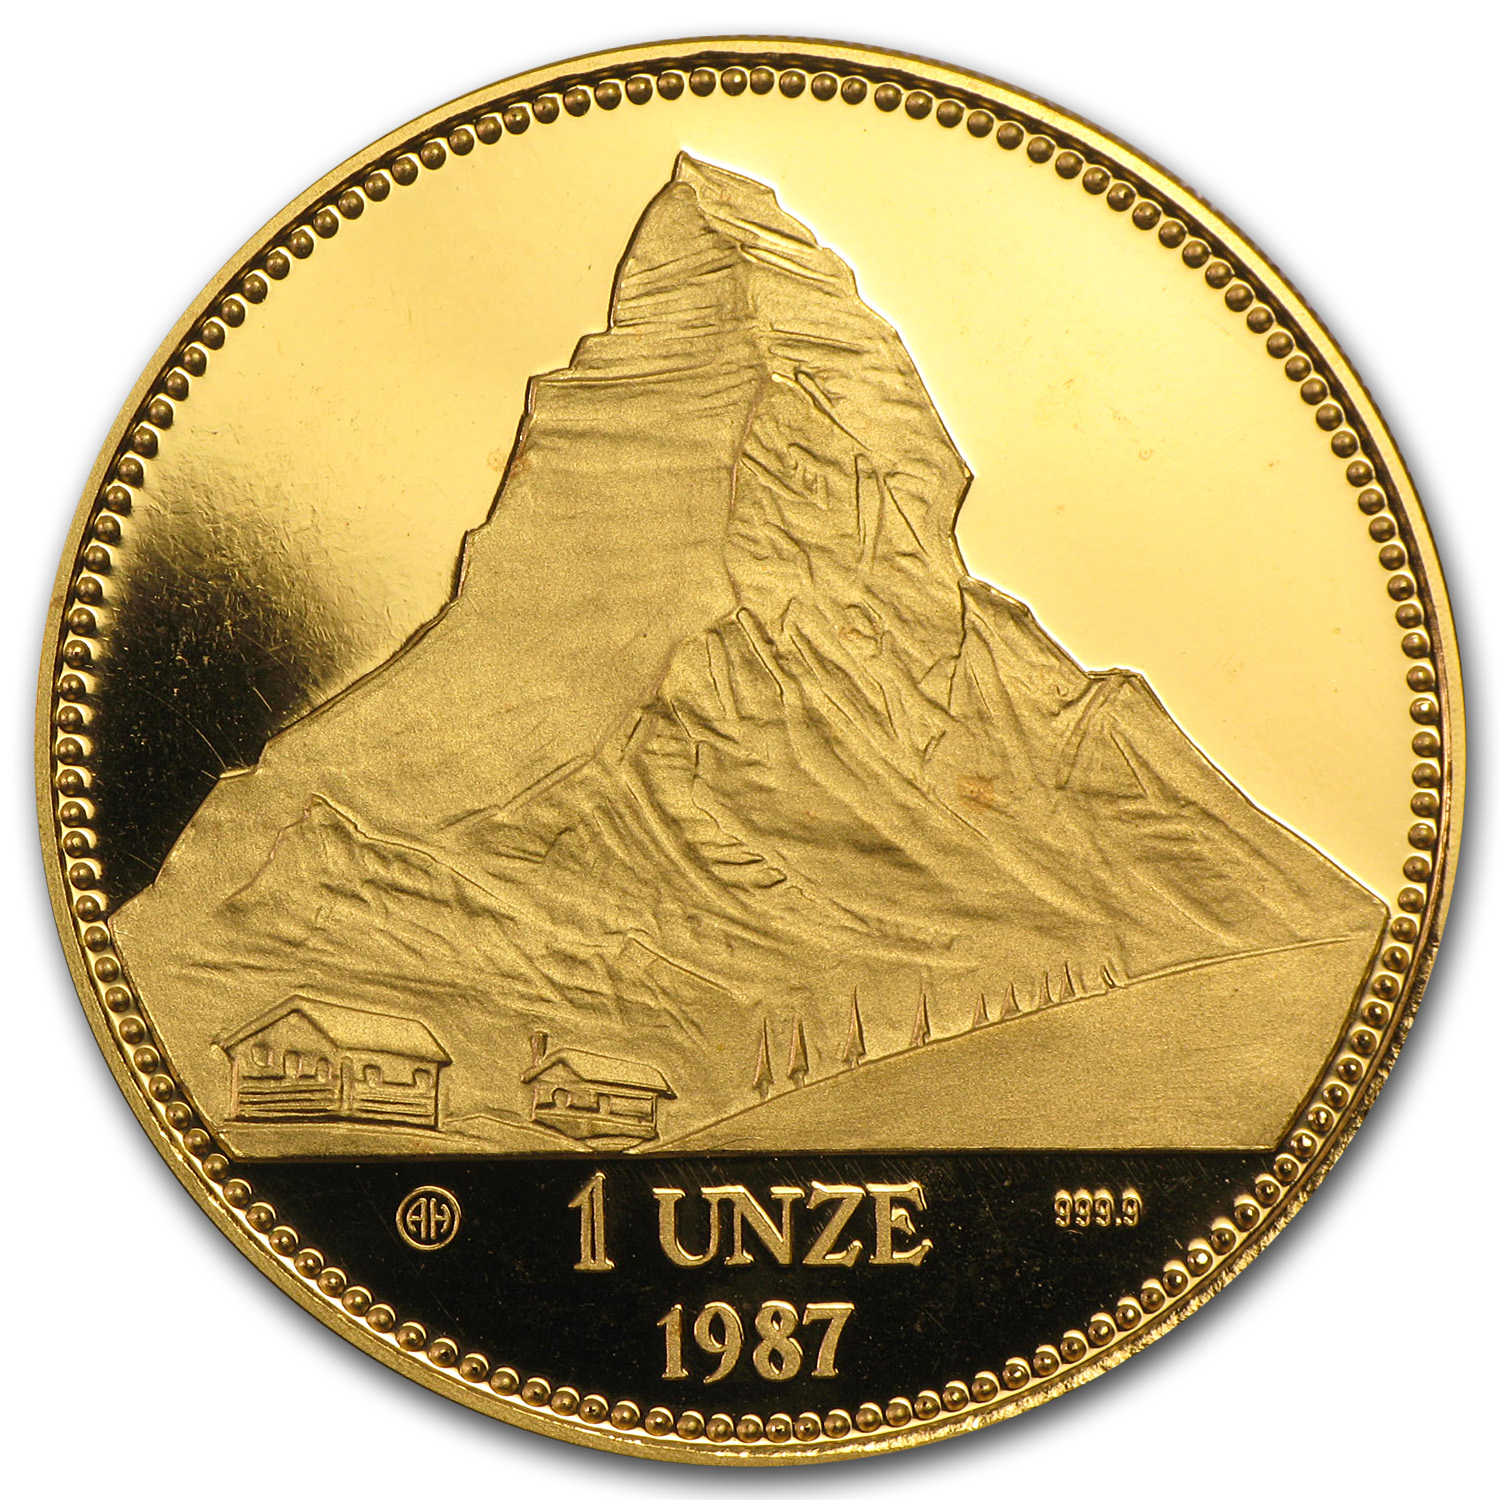 Switzerland 1987 1 Unze 999.9 Gold